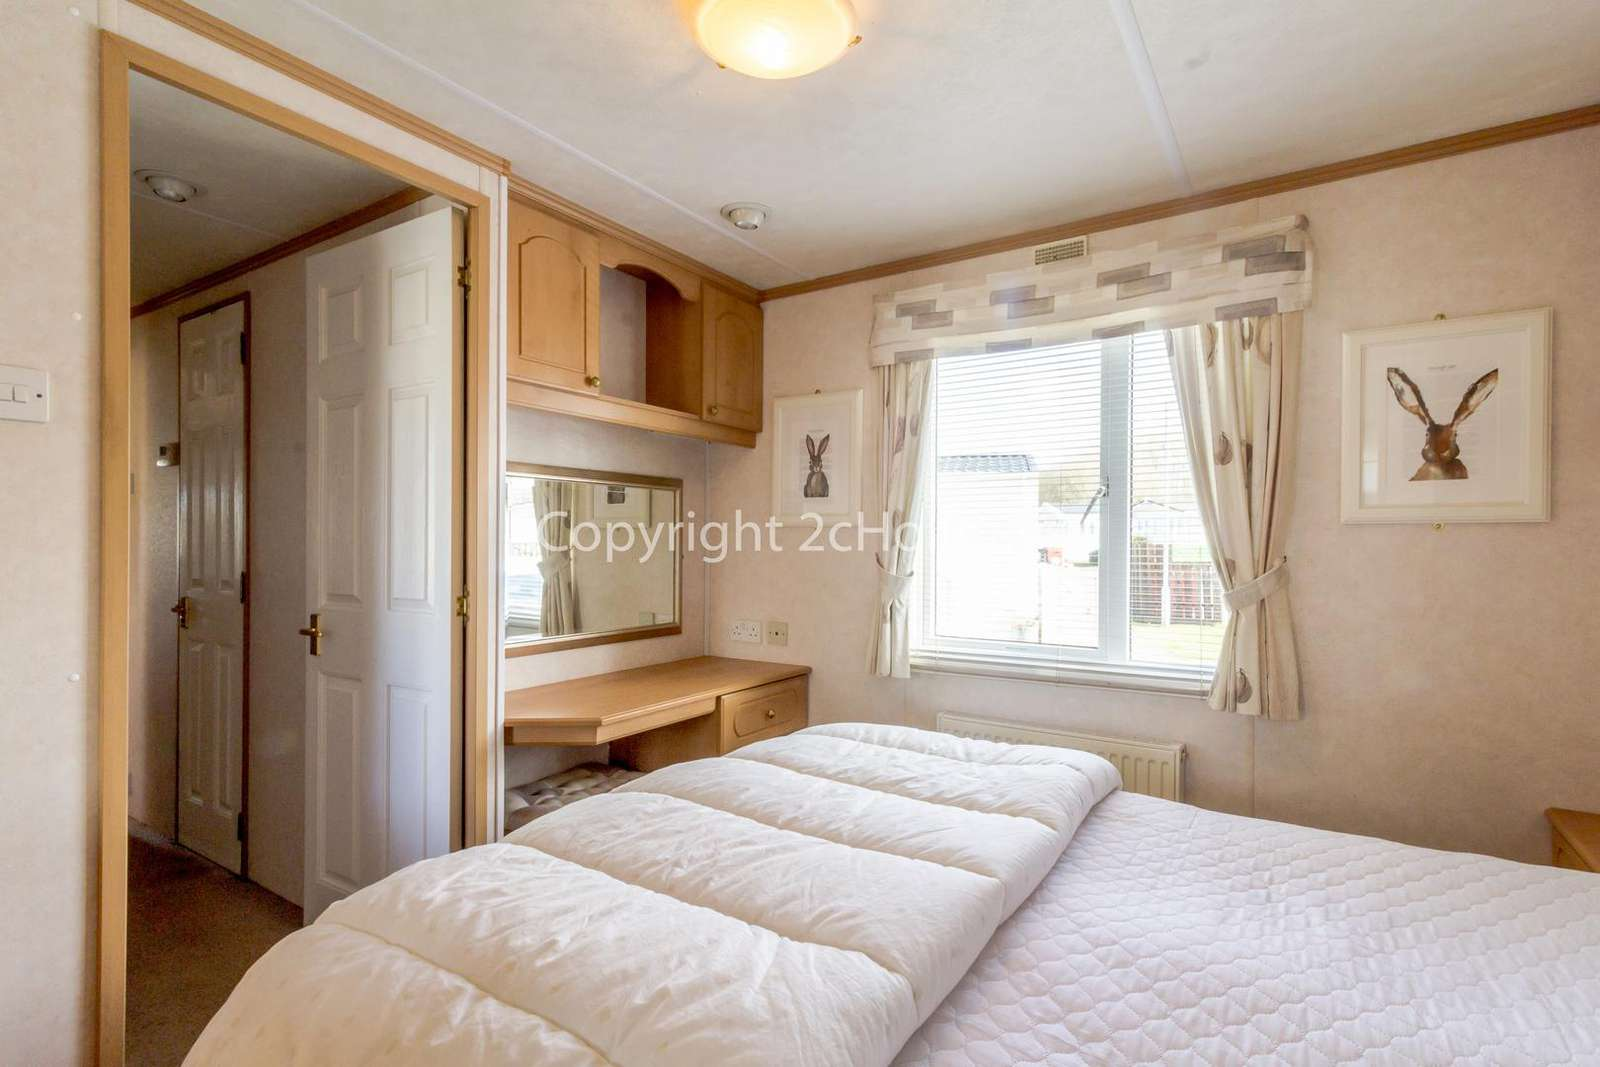 Great size master bedroom with an en-suite!